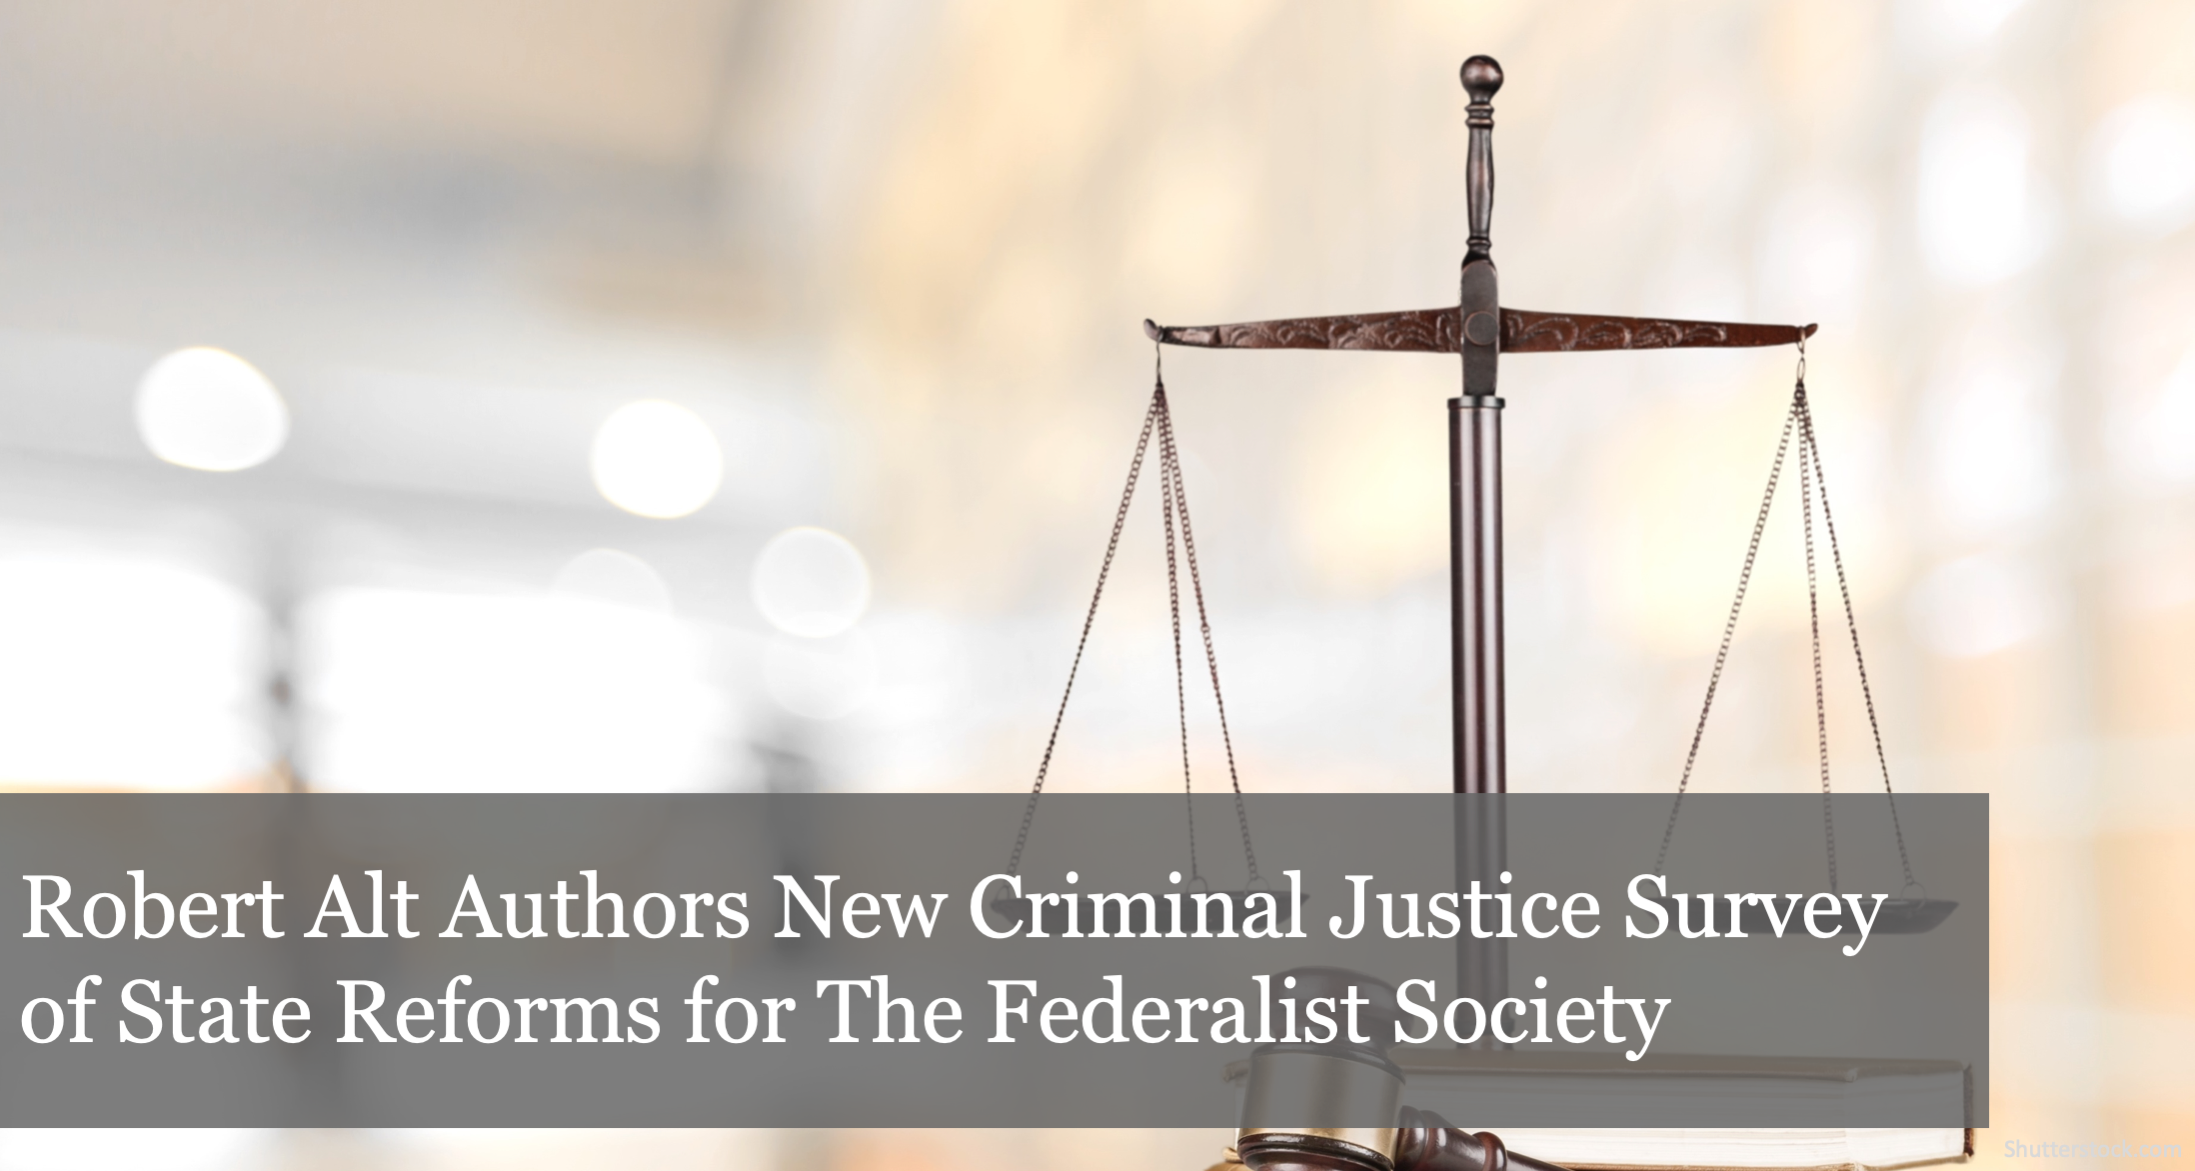 In New Whitepaper for The Federalist Society, Buckeye's Robert Alt Surveys Criminal Justice Reforms In States Across the Country